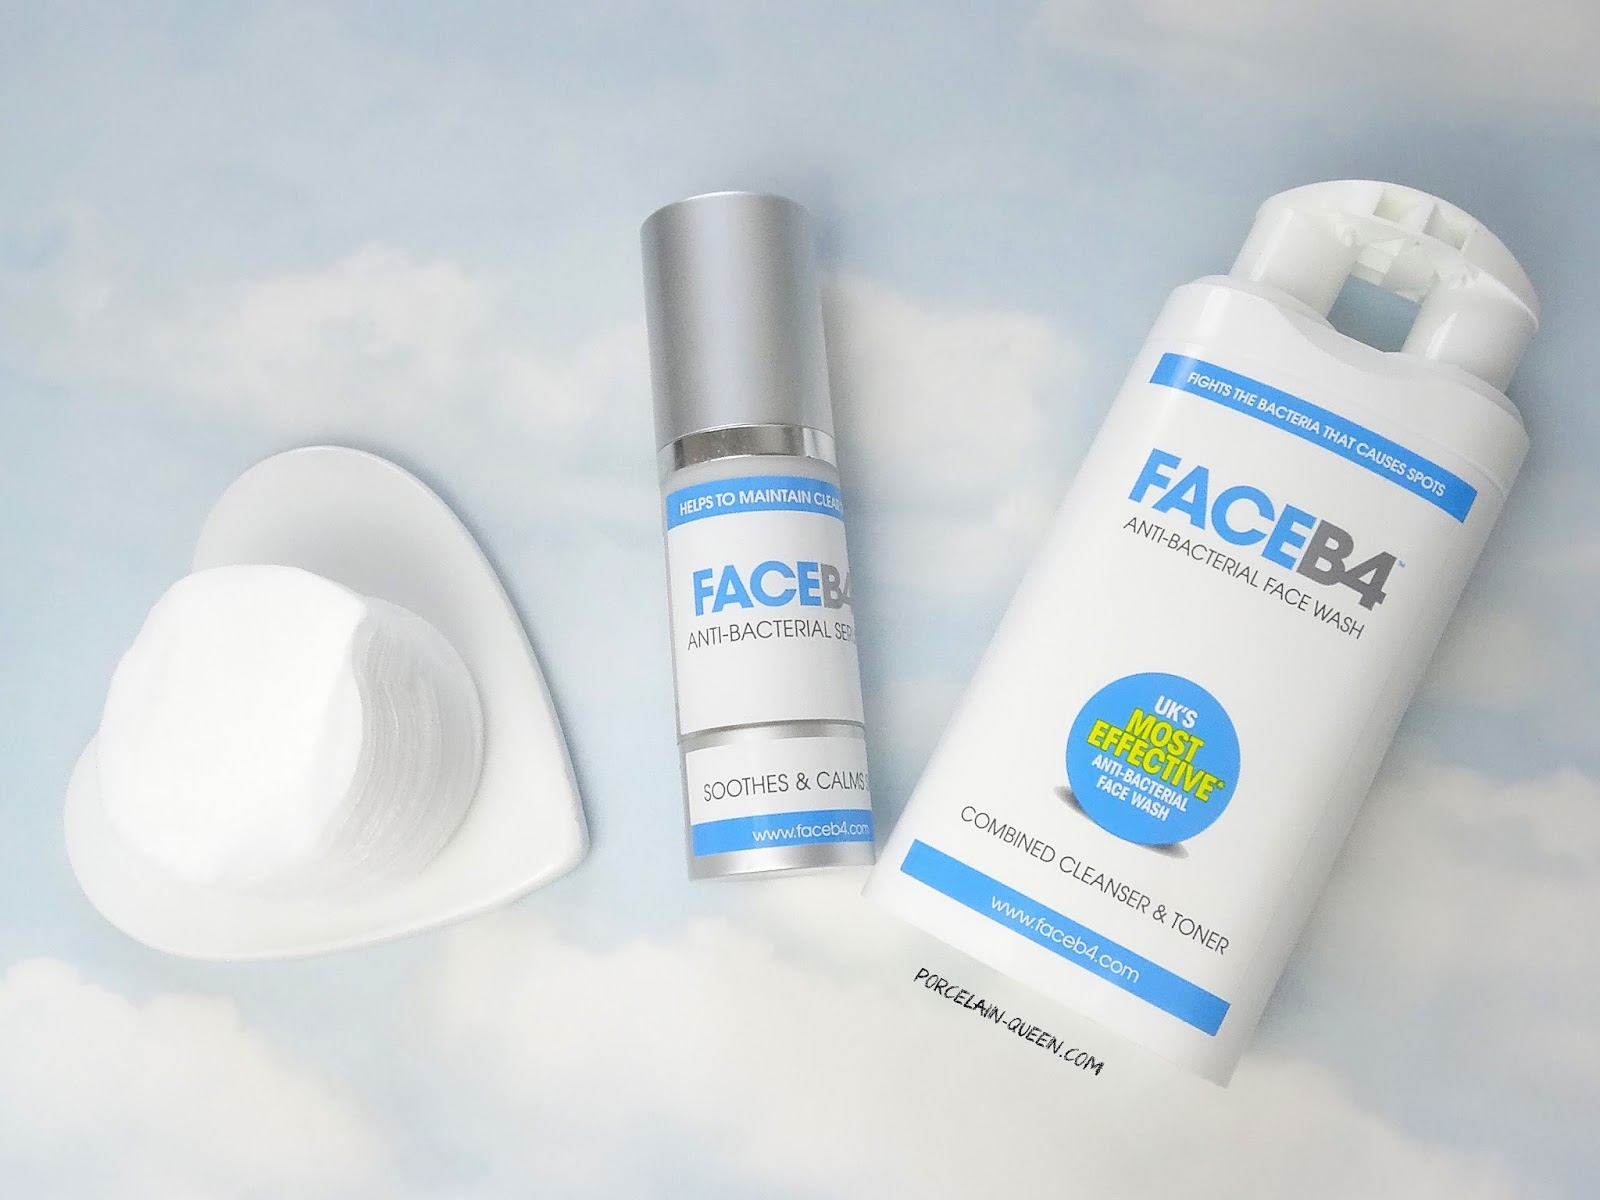 Face B4 Anti-Bacterial Face Wash and Serum